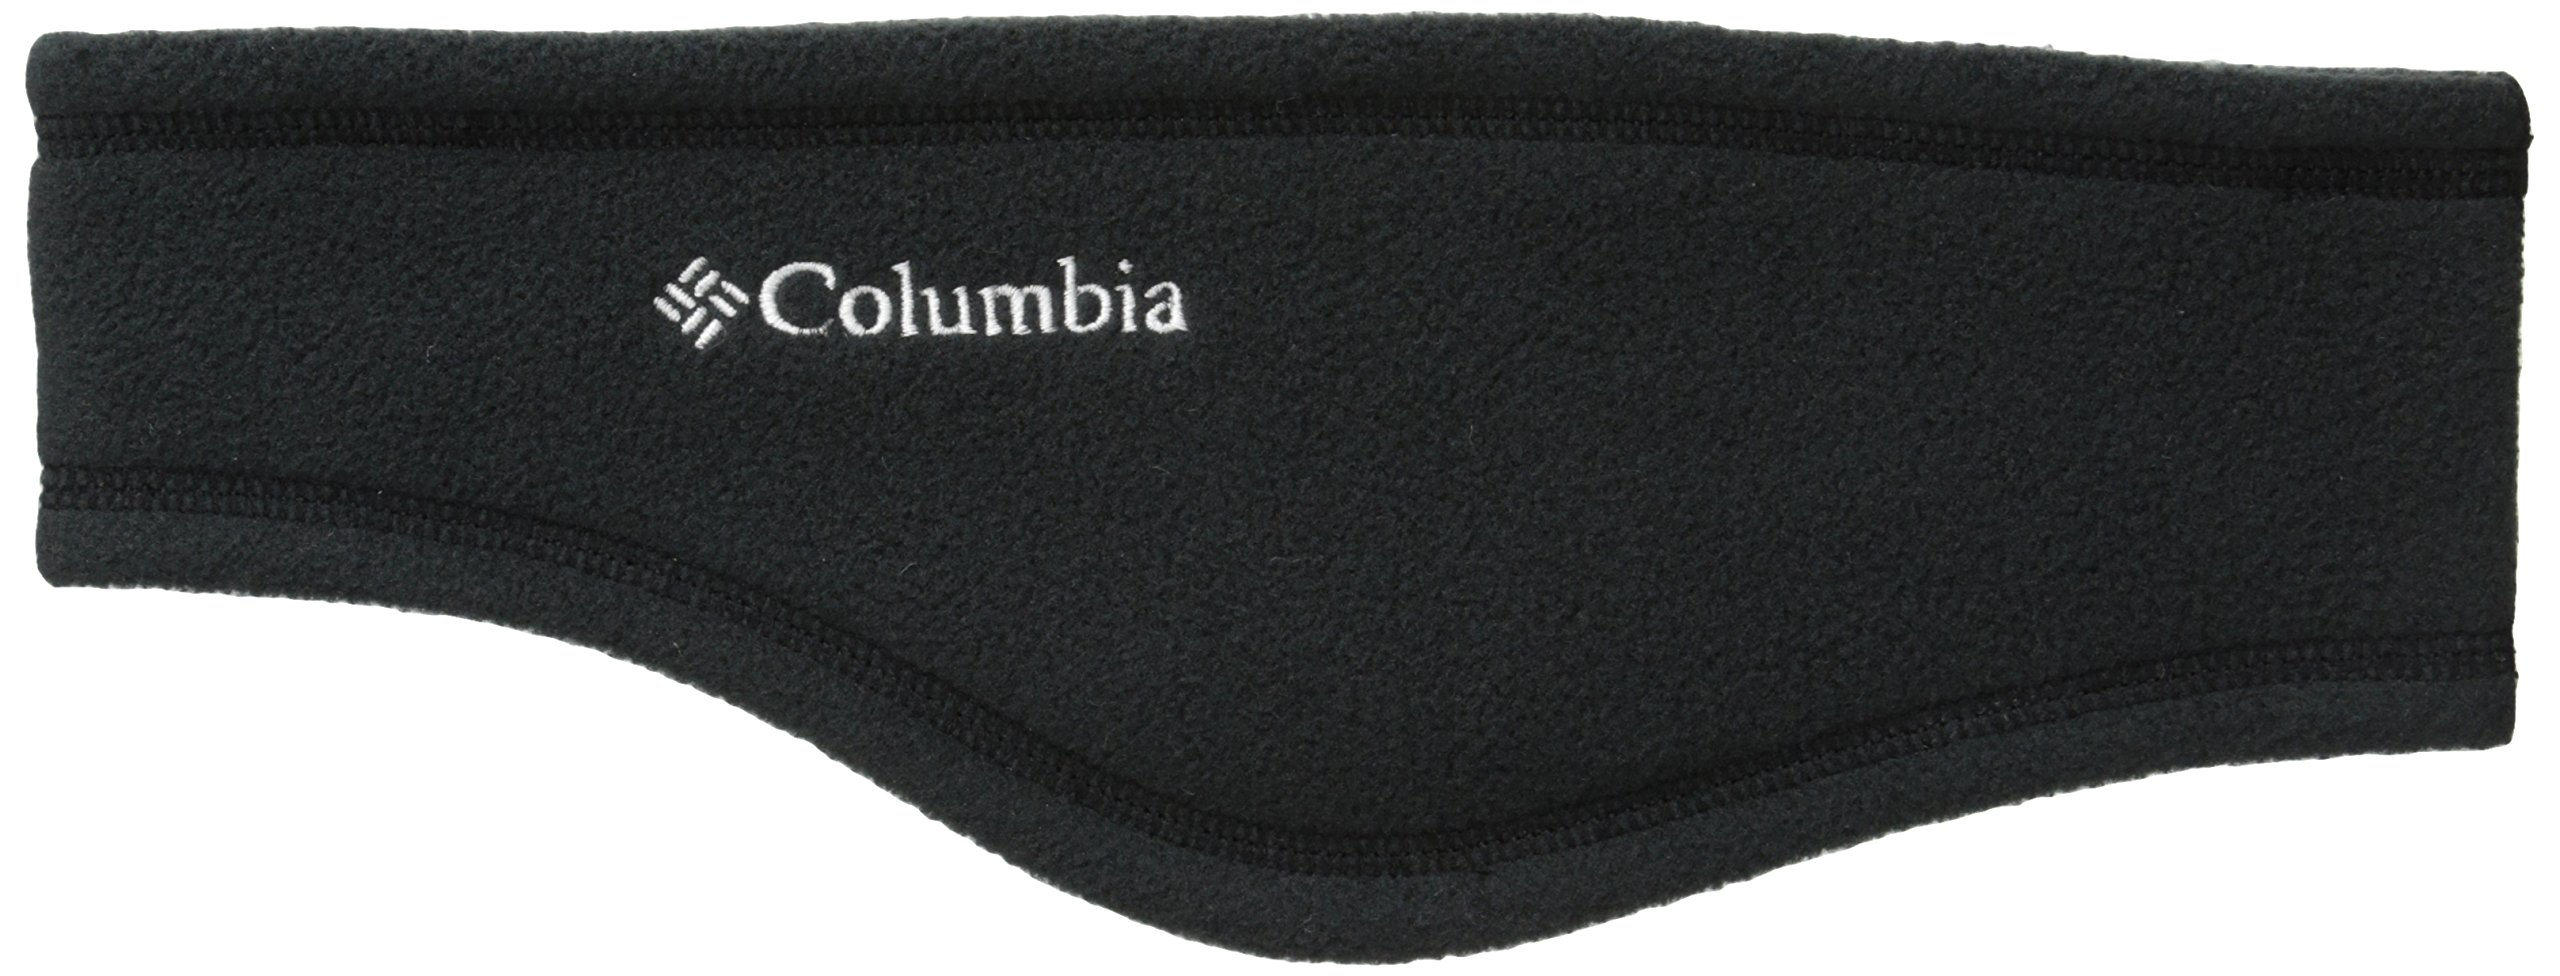 Columbia Men's Fast Trek Headring, Black, Large/X-Large